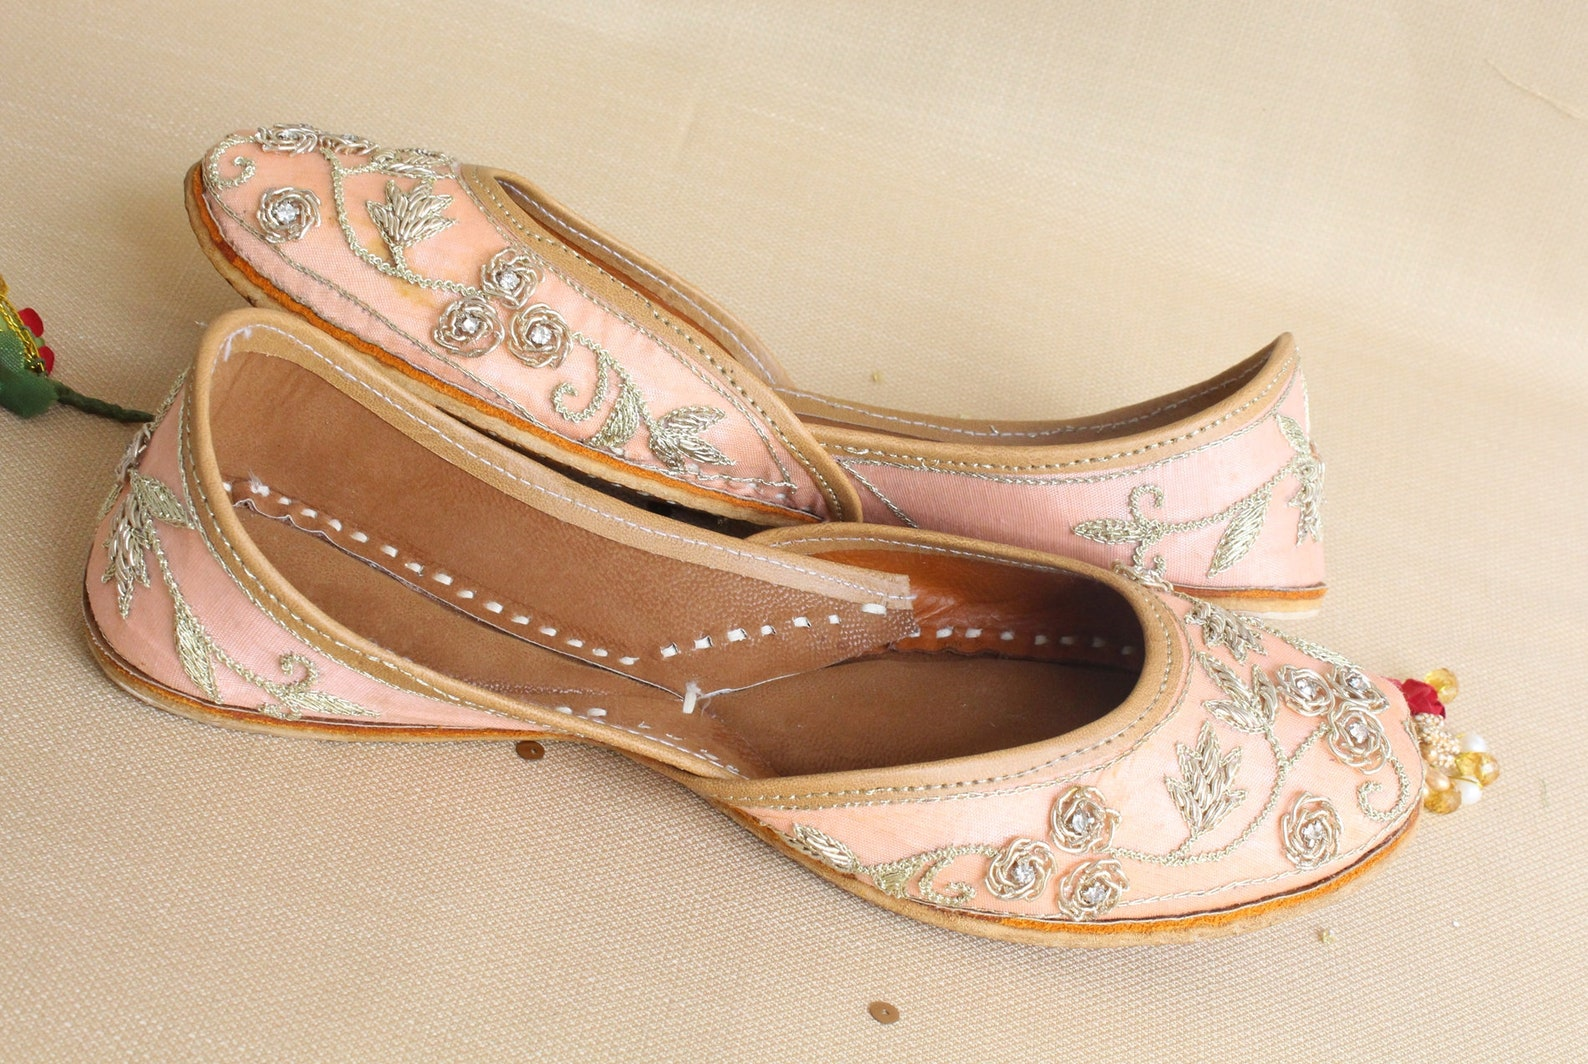 indian bridal wedding shoes/bollywood women peach lehnga gold jutti shoes/gold wedding ballet flats/khussa punjabi shoes us size